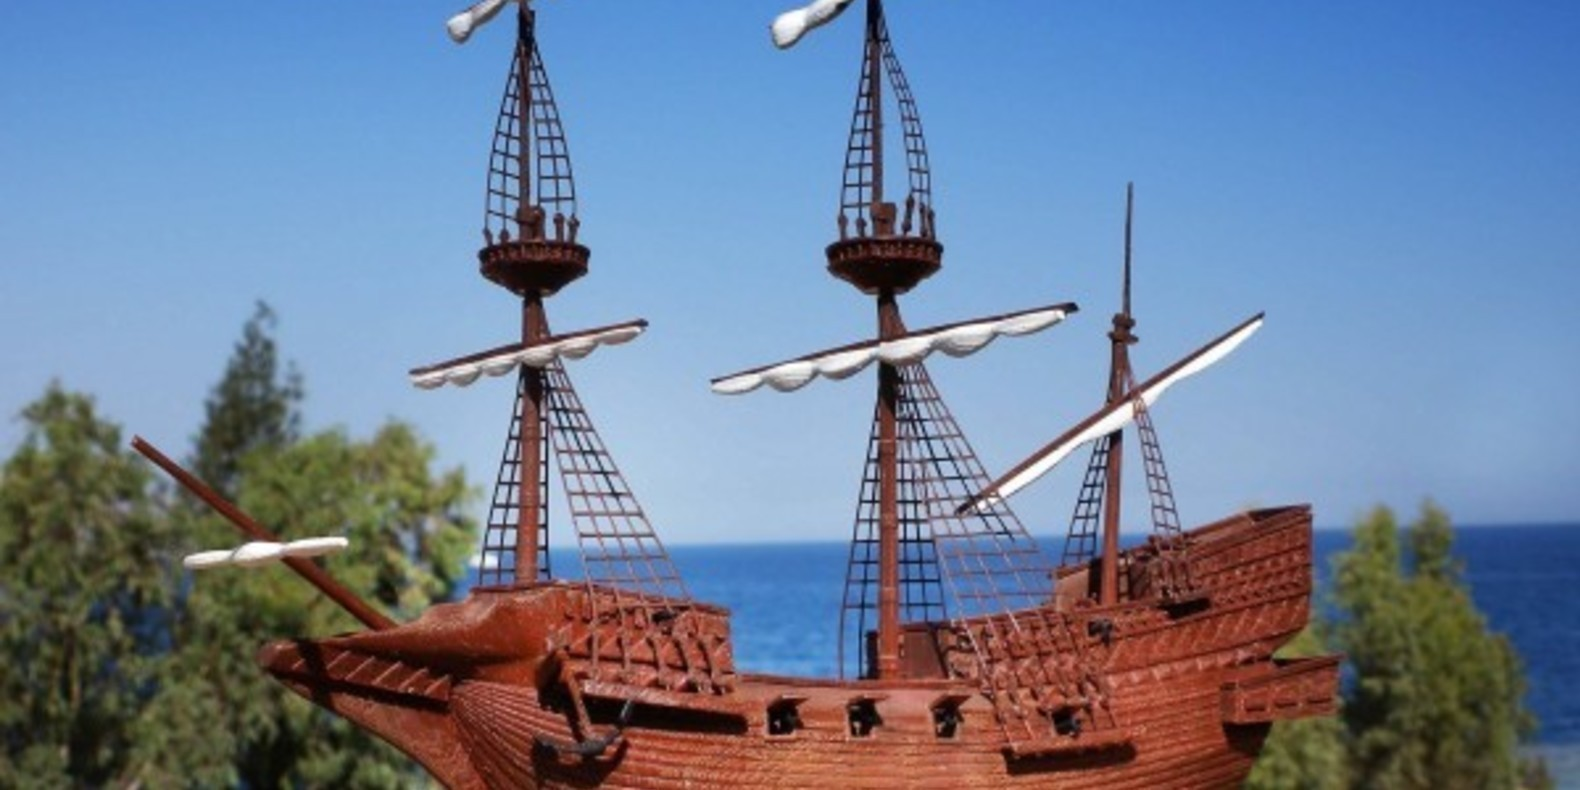 The Sir Francis Drake galleon printed in 3D